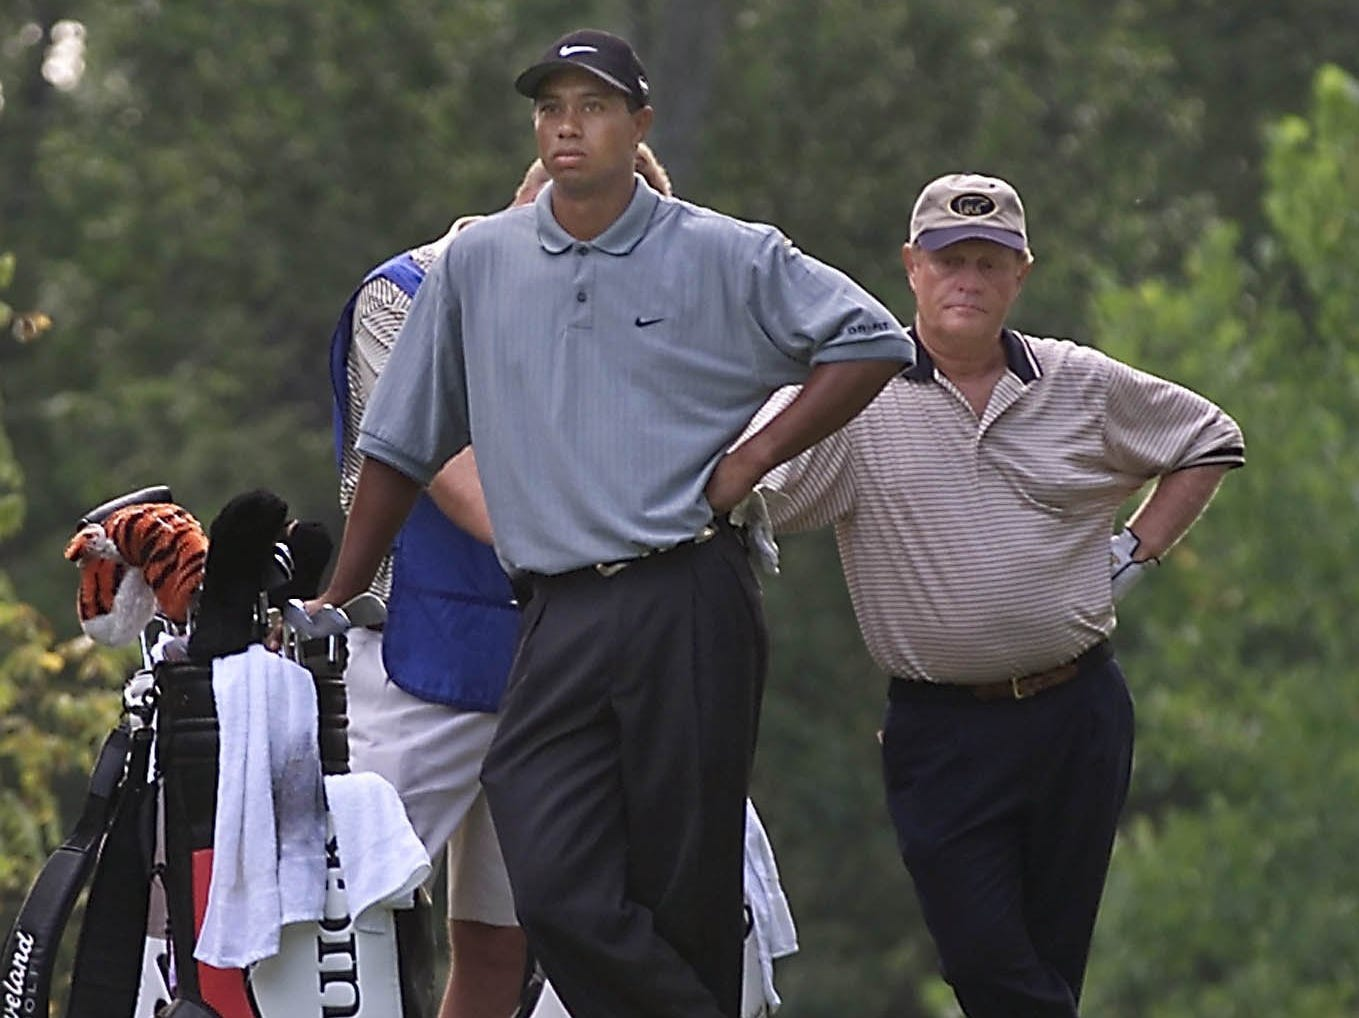 Tiger Woods who shared the early first round lead for the PGA Championship at Valhalla and Jack Nicklaus, background, waited to tee off on the second hole of the tournament.